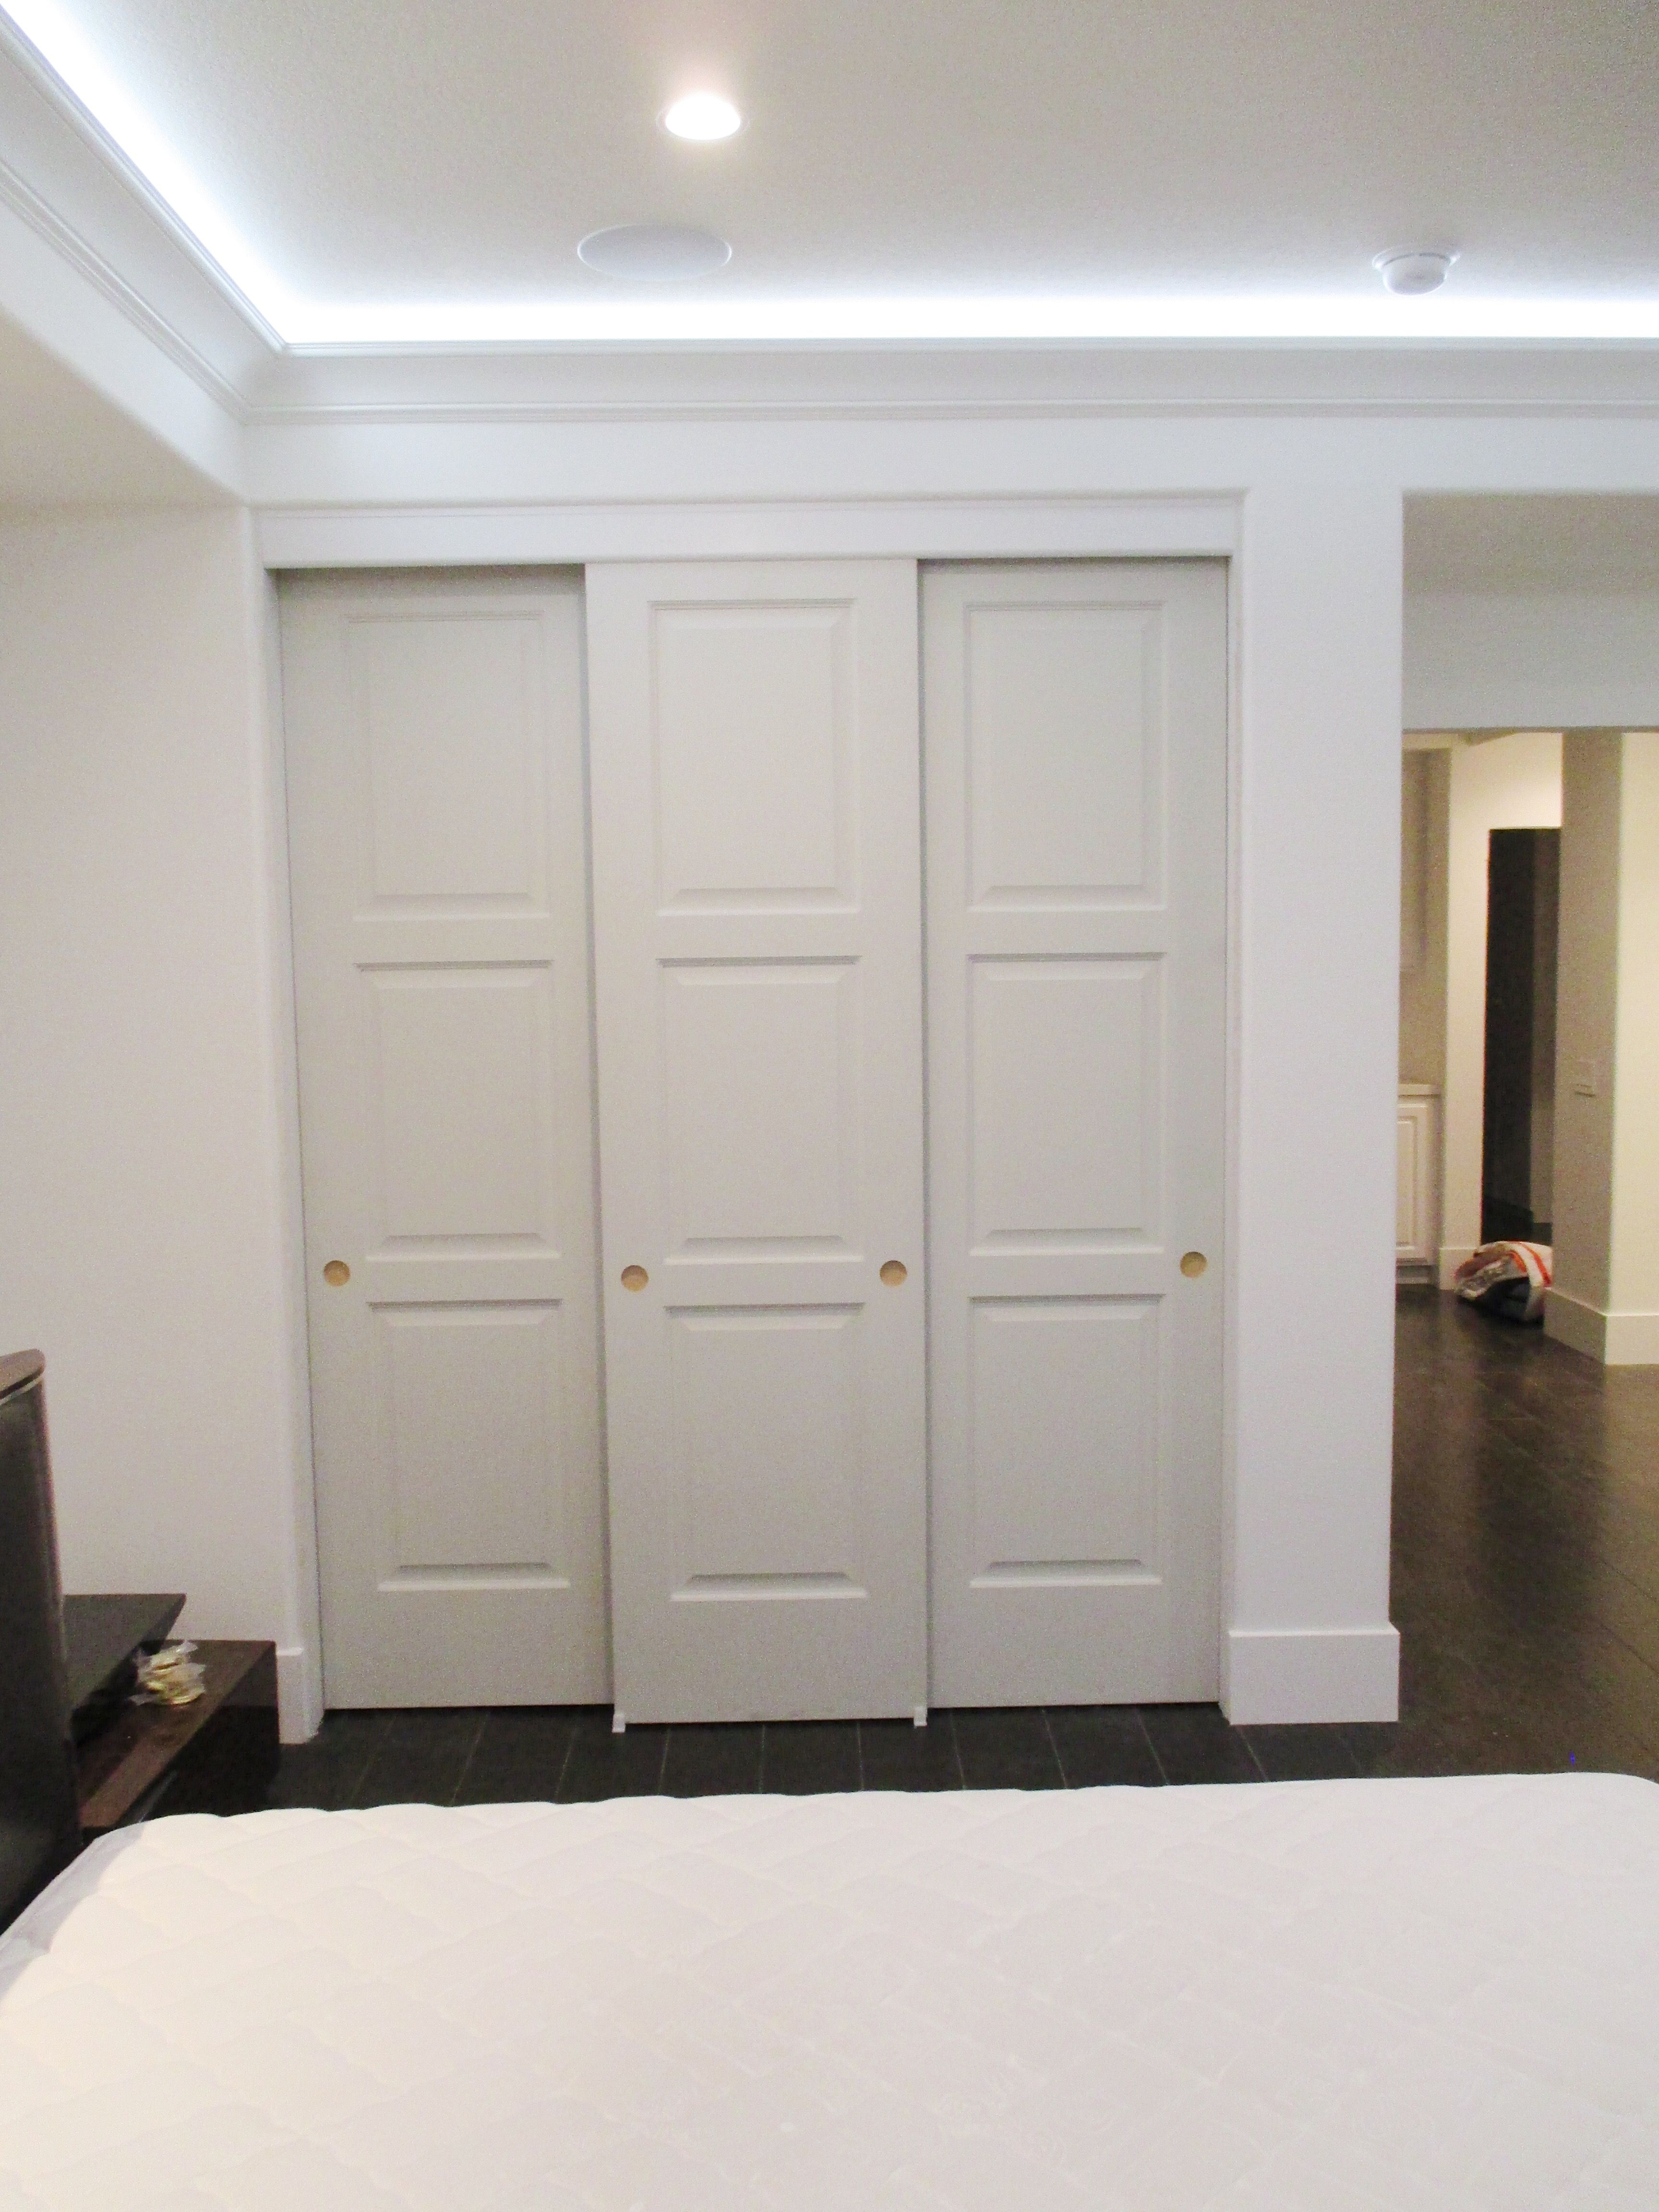 We Recently Installed These 3 Track 3 Panel Hollow Core Top Hung Closet Doors If It S Time To Replace Your Old Closet Do Old Closet Doors Closet Doors Home